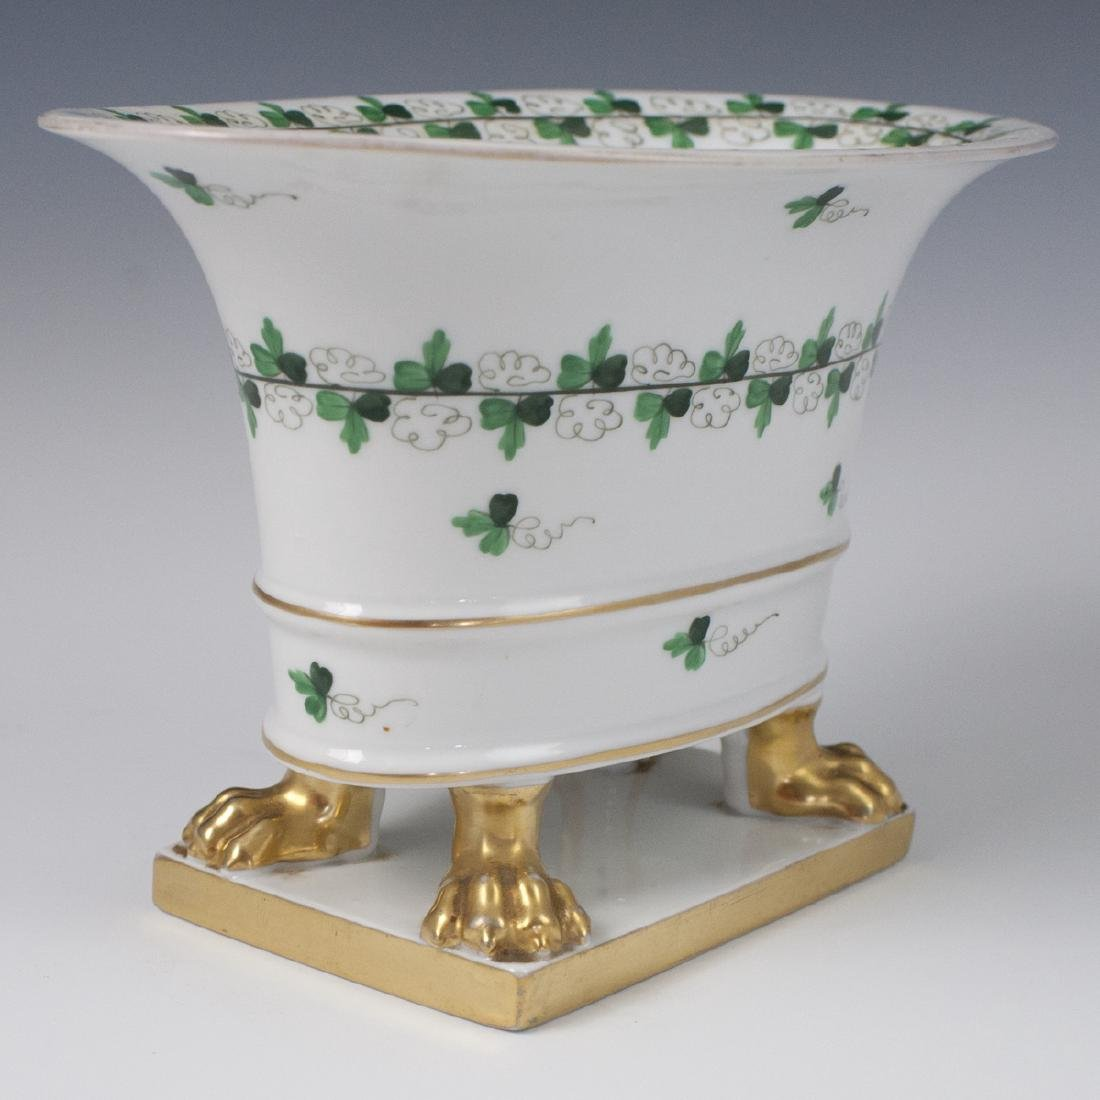 """Herend Centennial """"Persil"""" Porcelain Footed Planter - 4"""